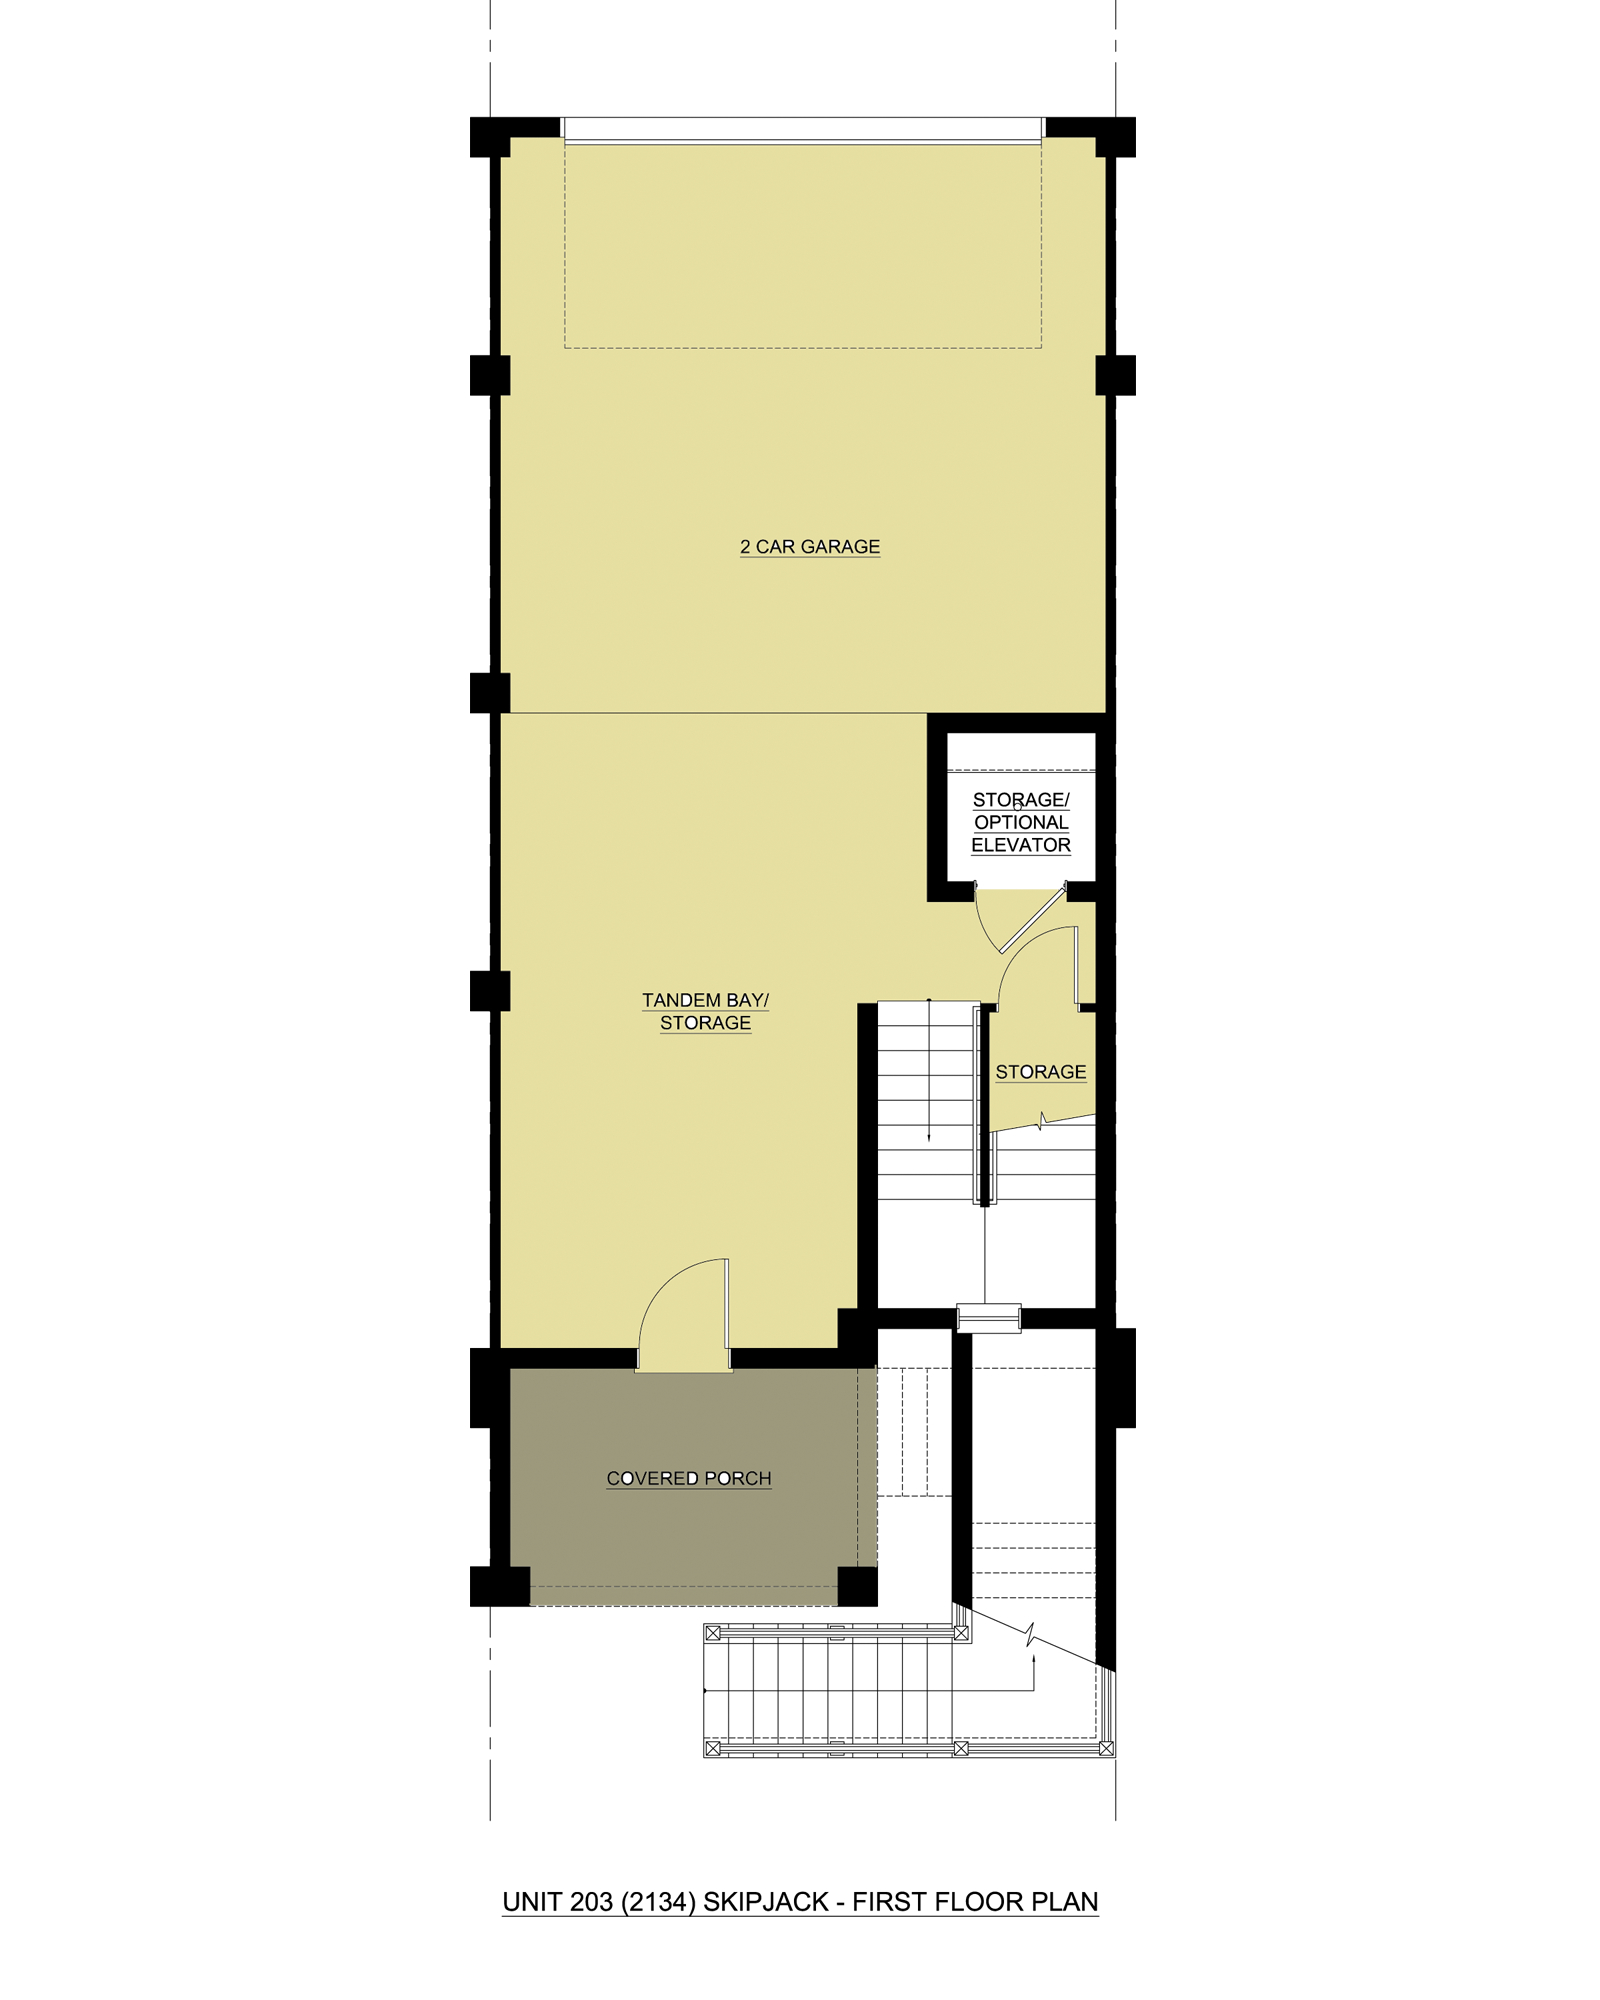 Skipjack w/ Loft, Indian Shores - First Floor